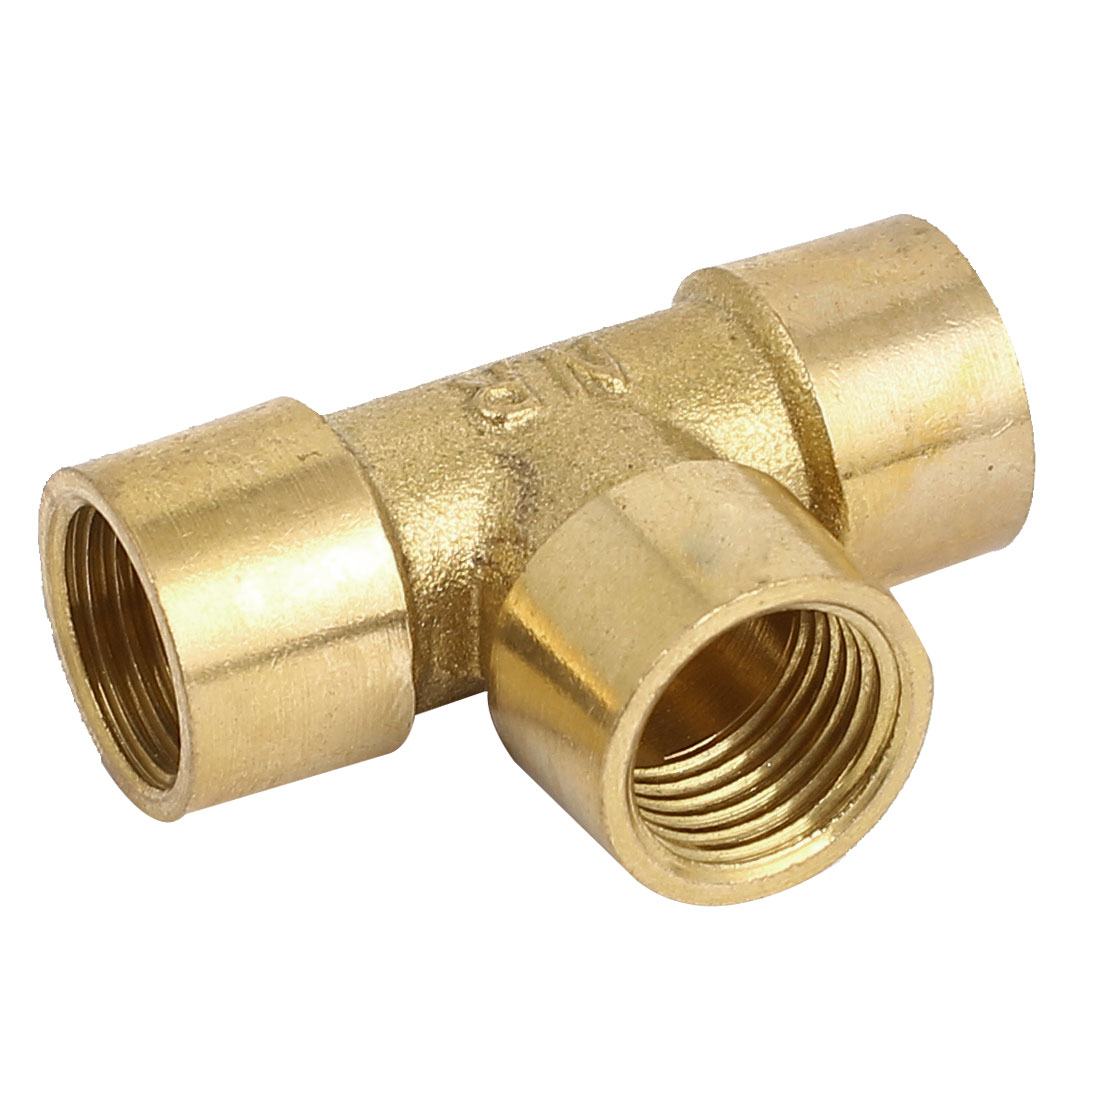 1/4BSP Female Threaded 3 Ways Cross Coupler Adapter Pipe Fitting Brass Tone - image 2 of 2